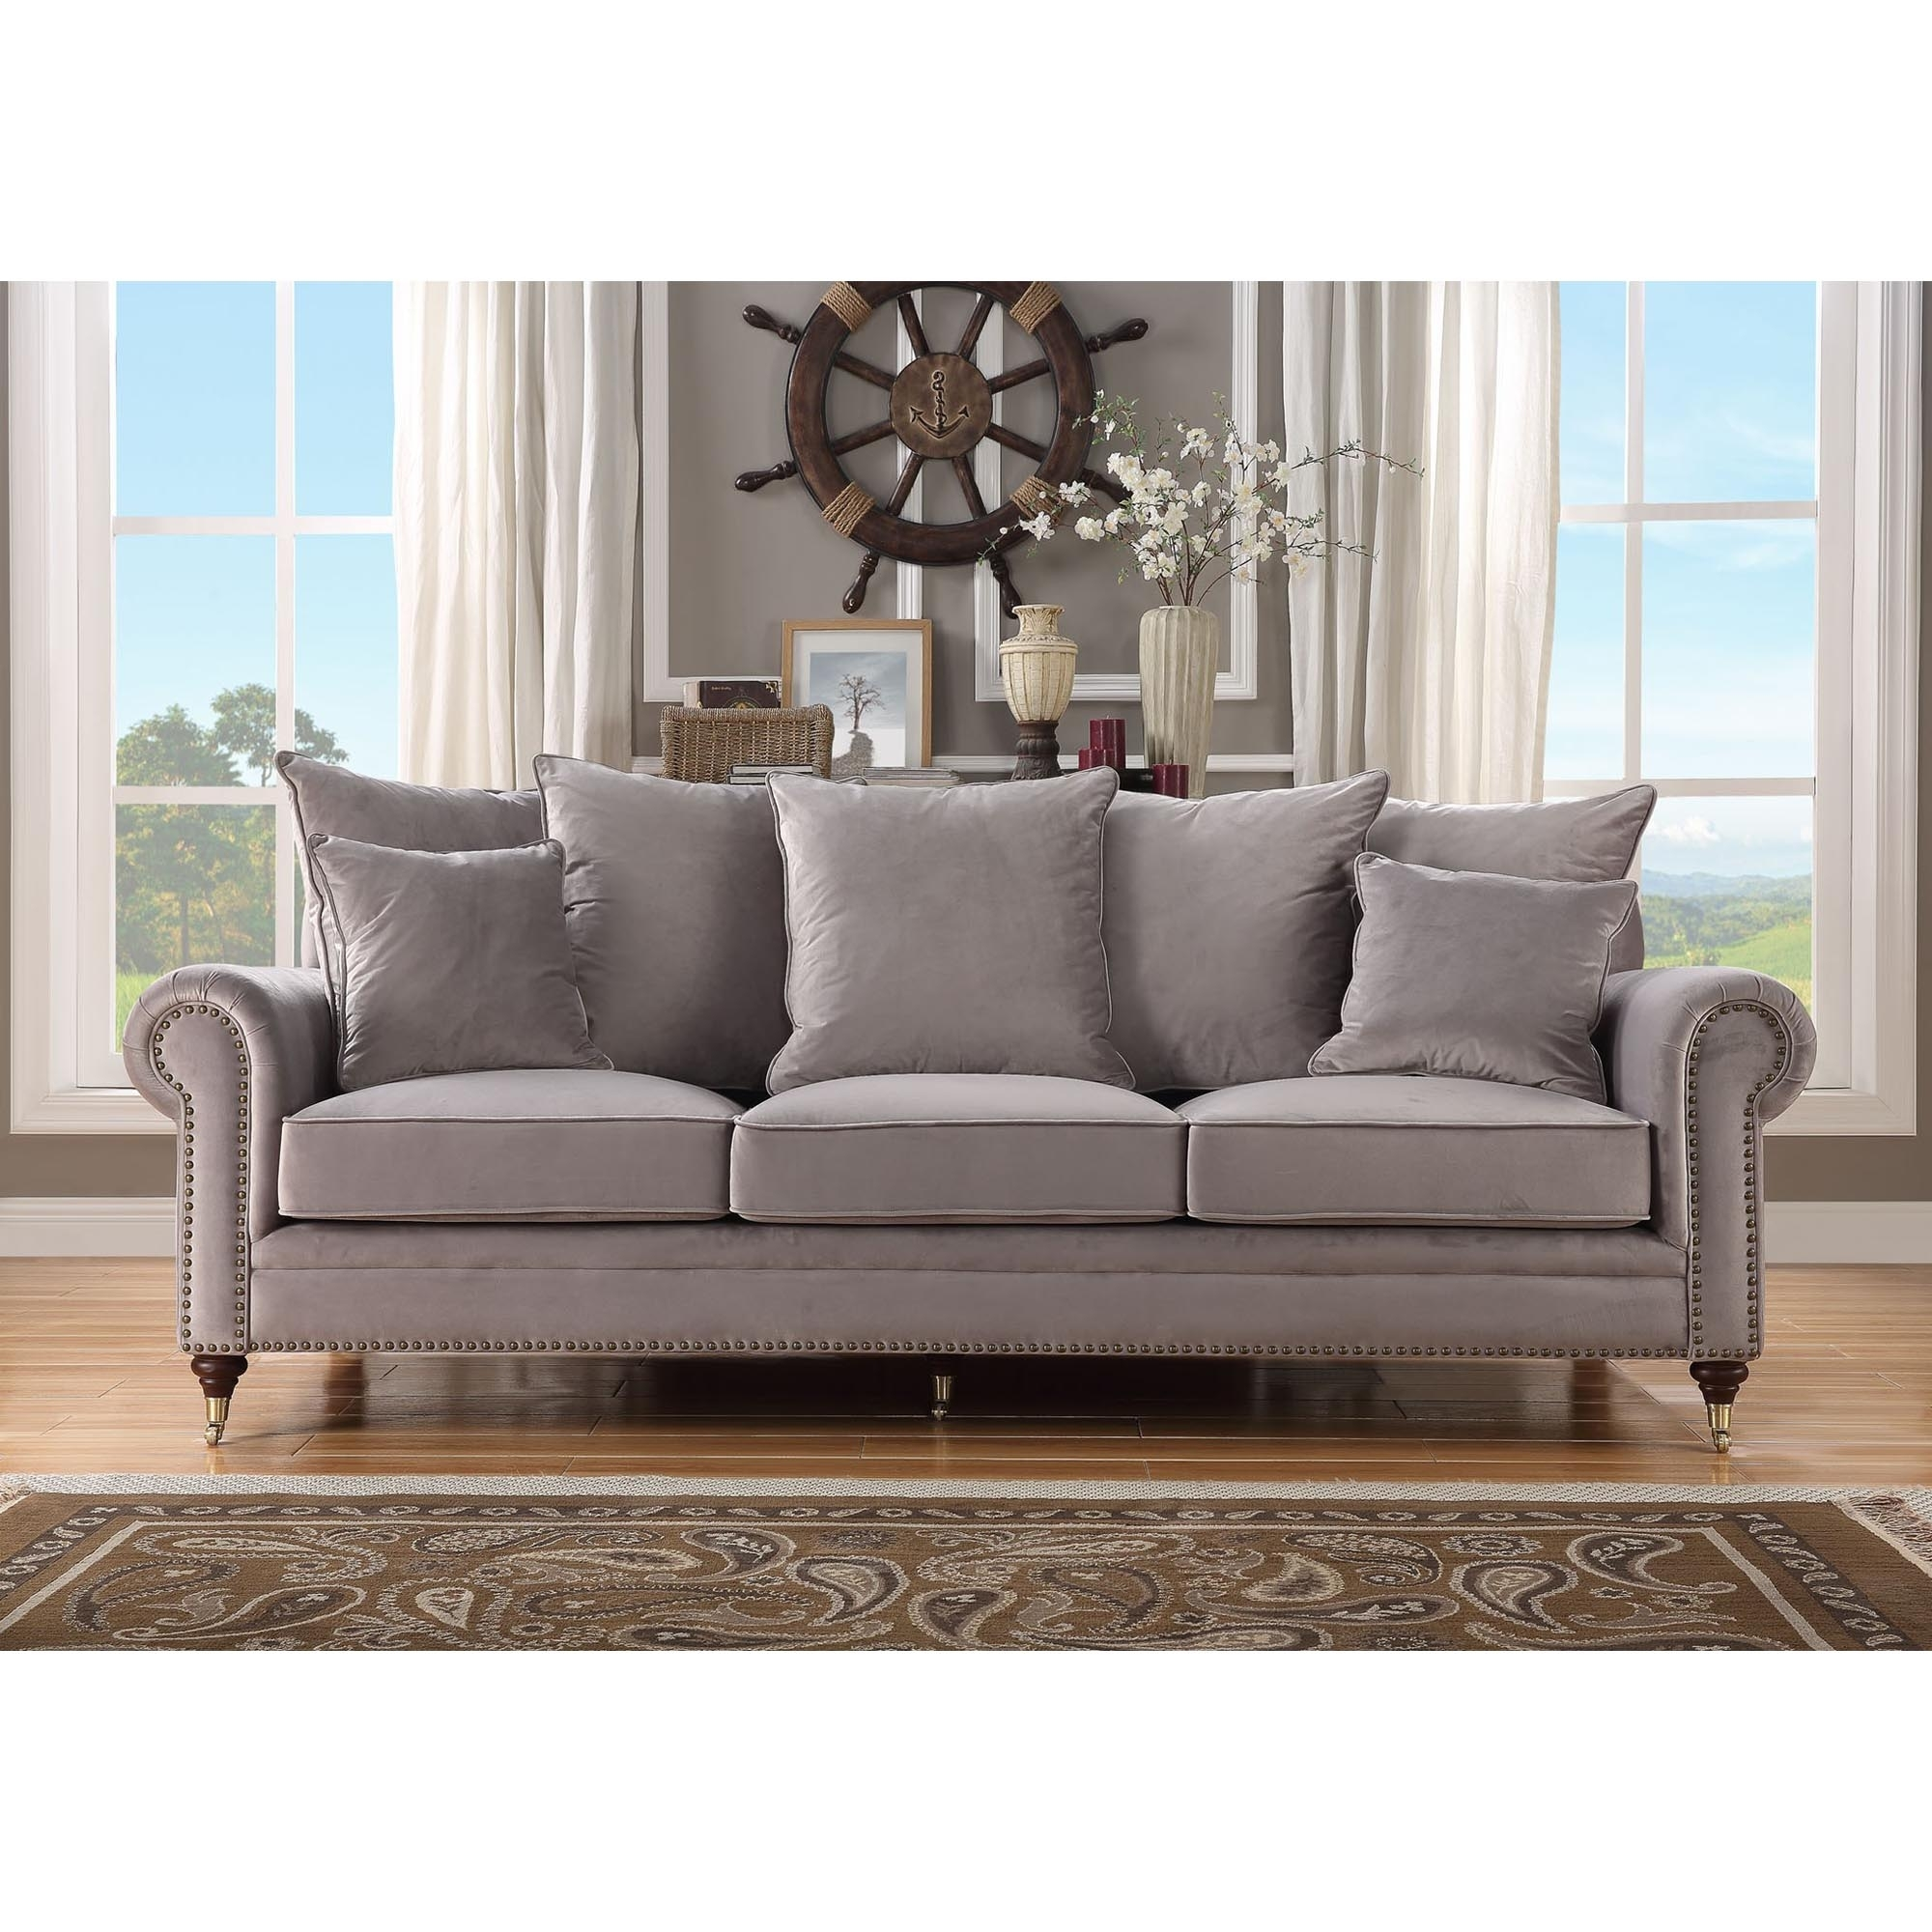 Hampton 3 Seater Grey Sofa  Sofa  HomesDirect365